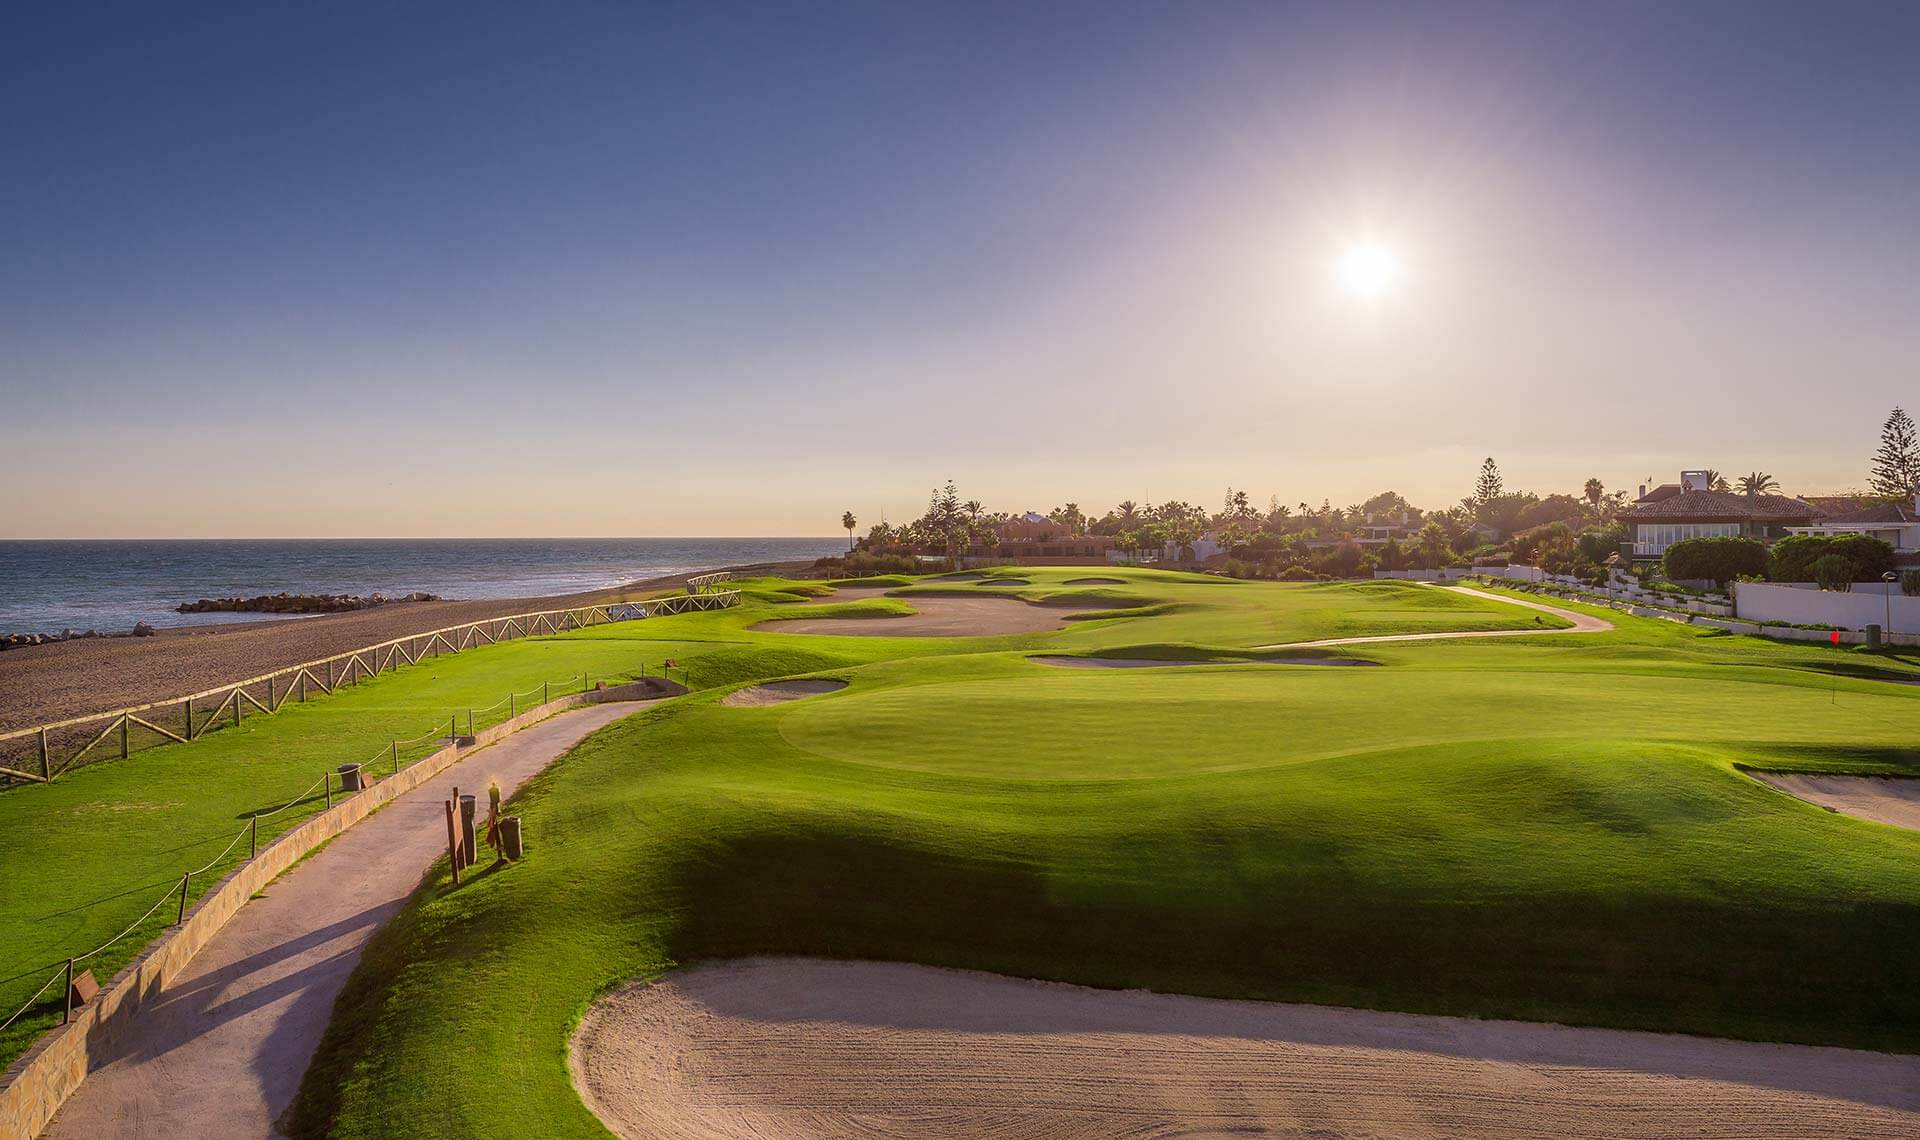 Luxury golfing options in Marbella